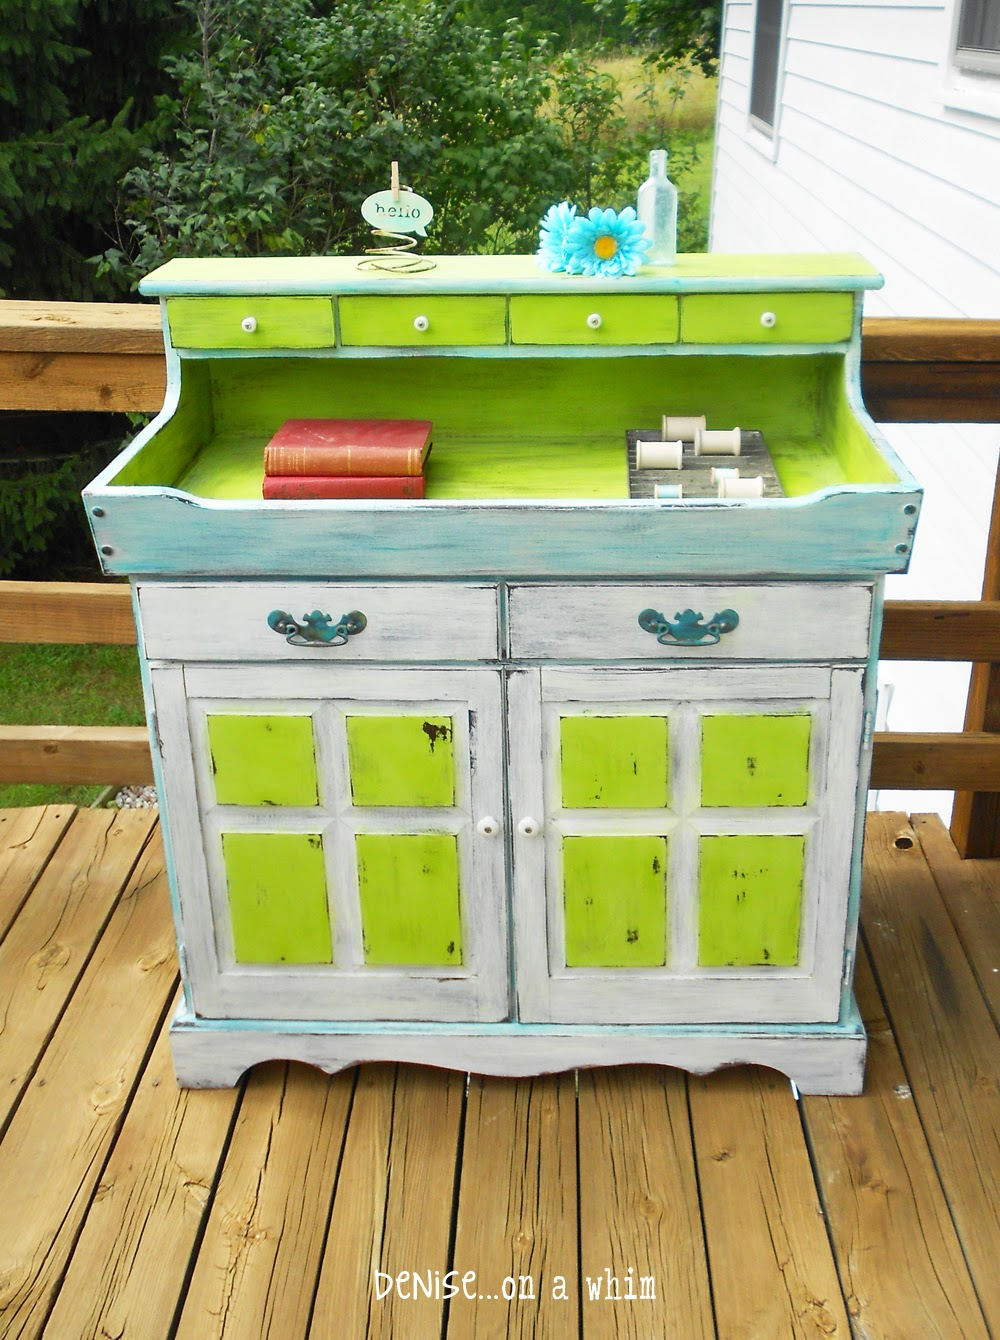 A real eye-catcher! Dry Sink Makeover in Teal and Green by Denise On a Whim